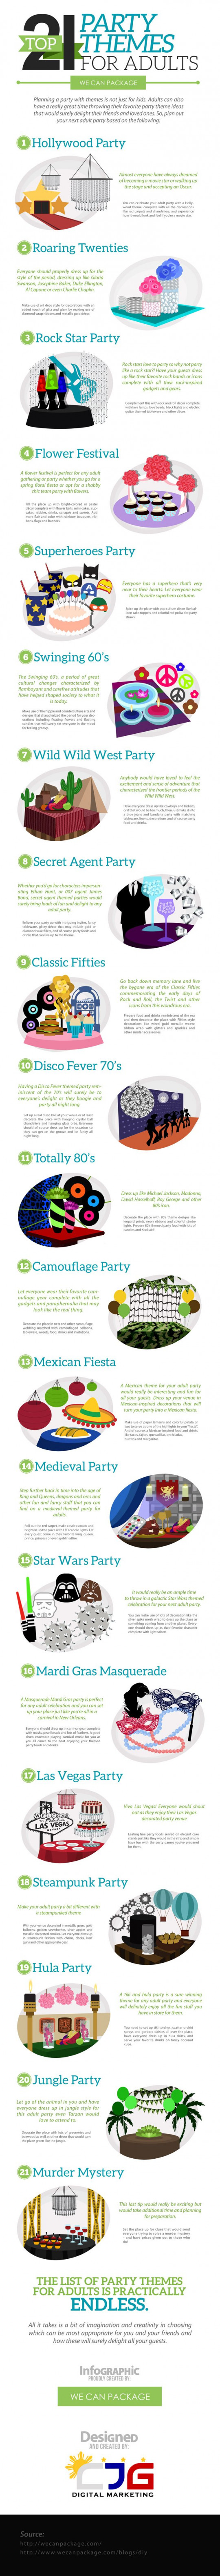 Top 21 Party Themes for Adults (Infographic)